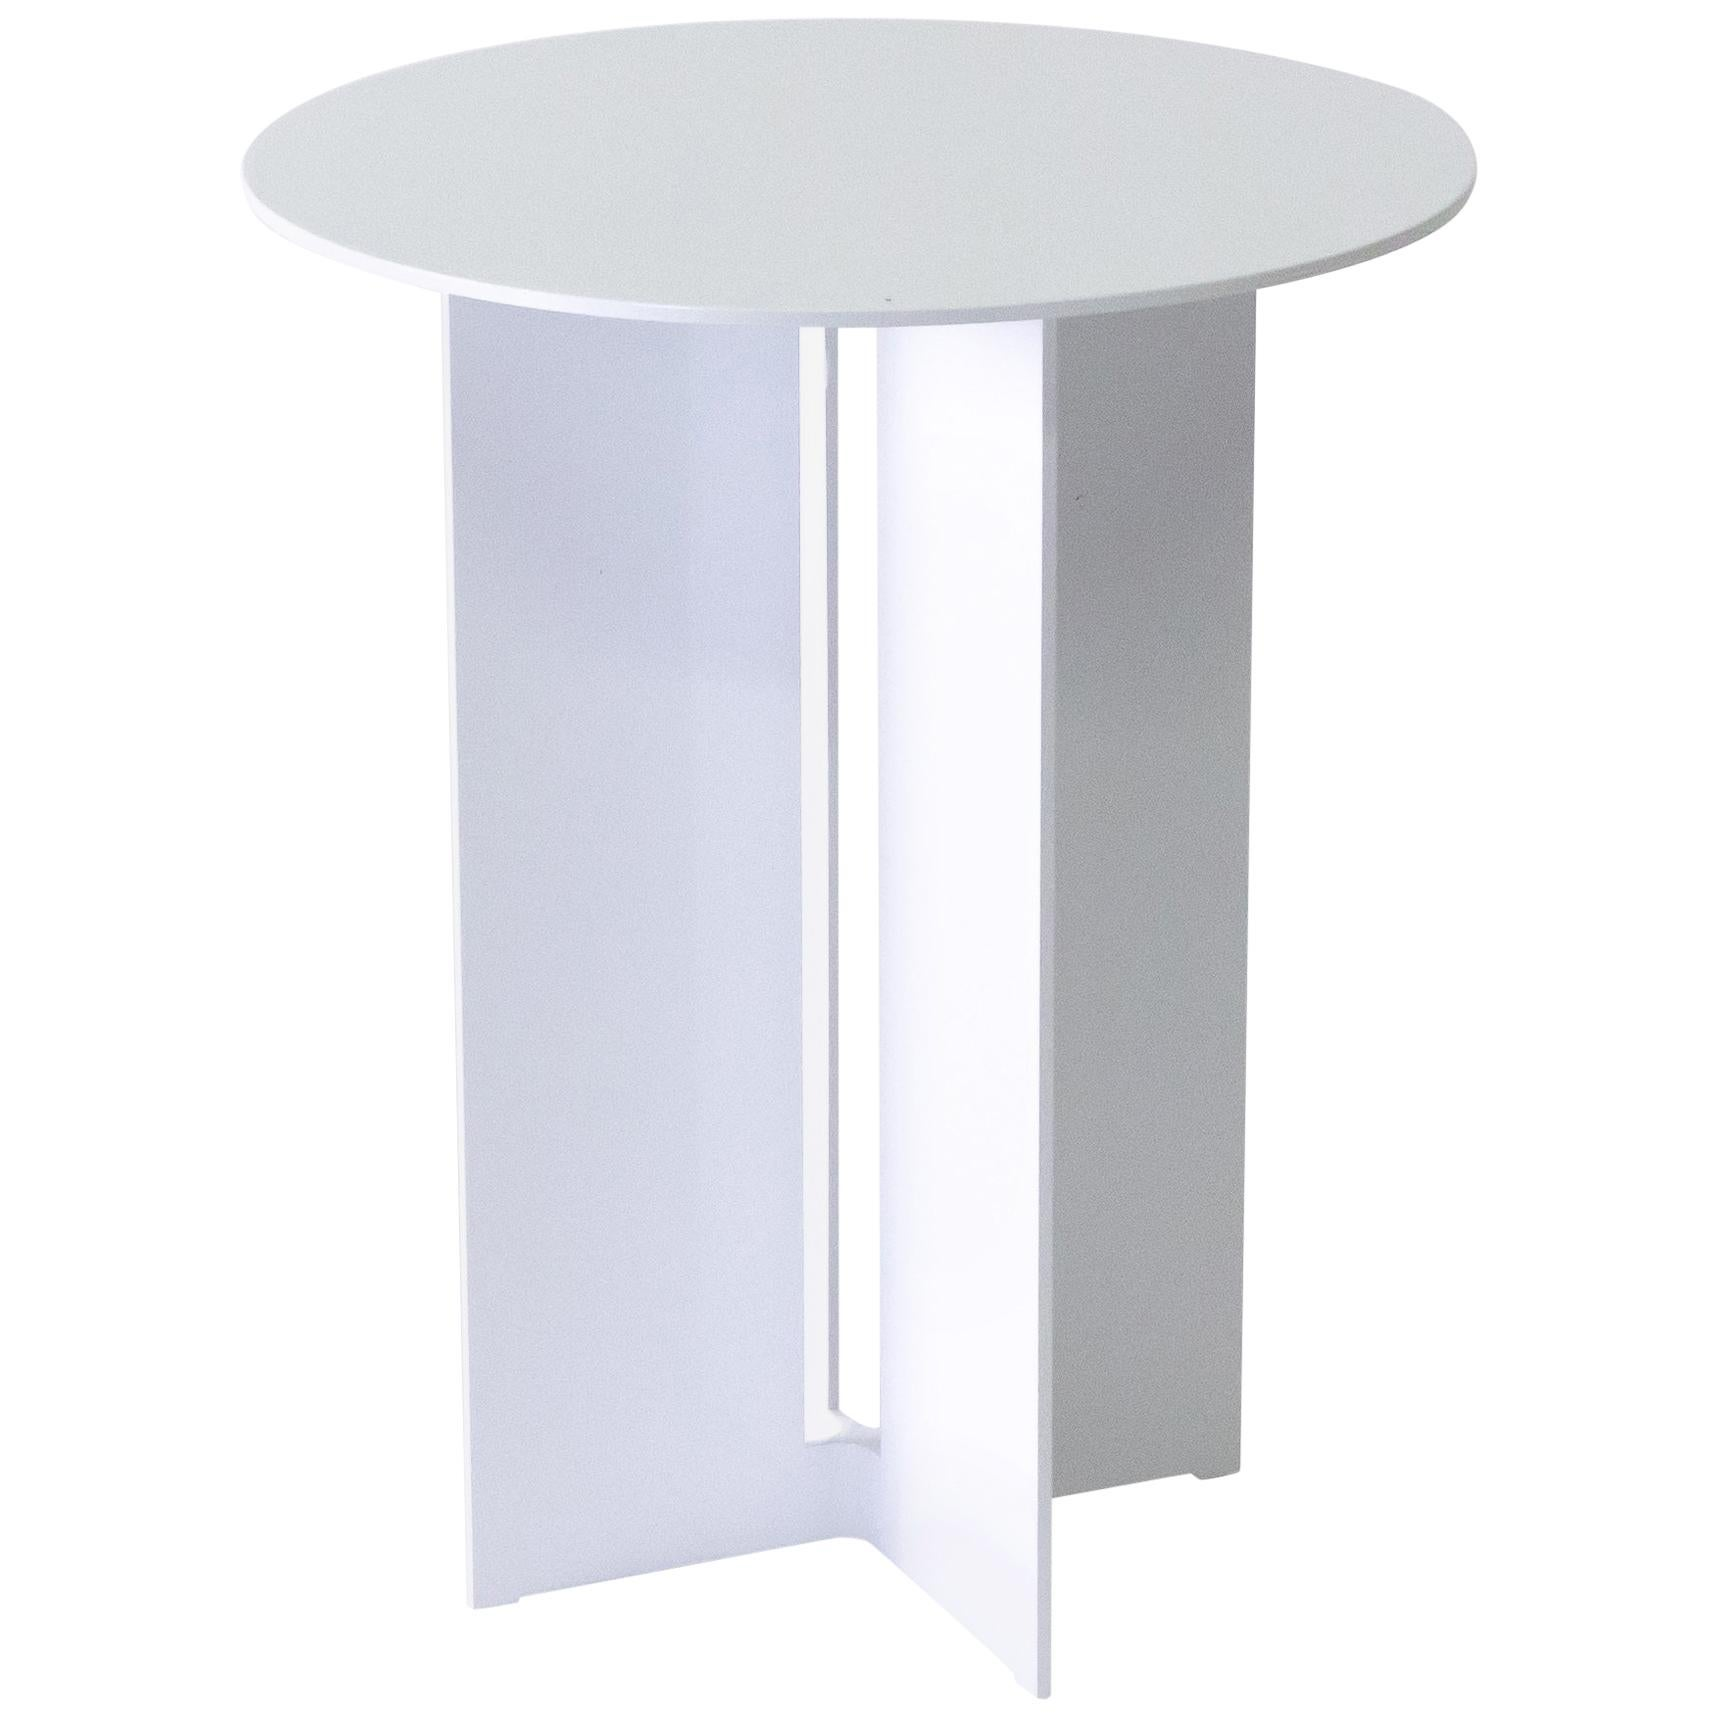 Mers Side Table in Powdercoat Aluminum White